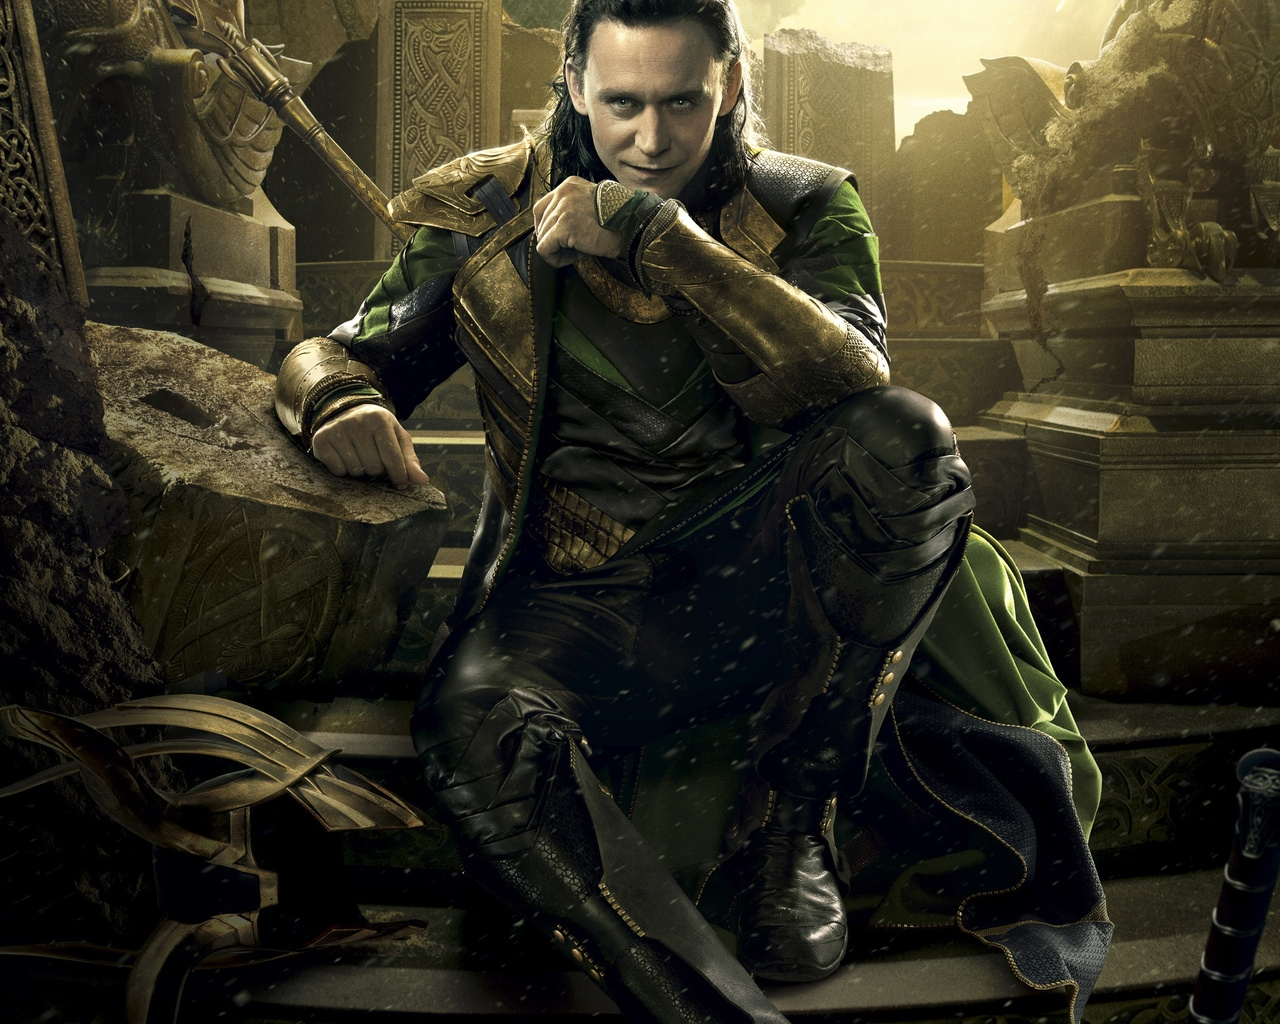 Loki Pose for 1280 x 1024 resolution